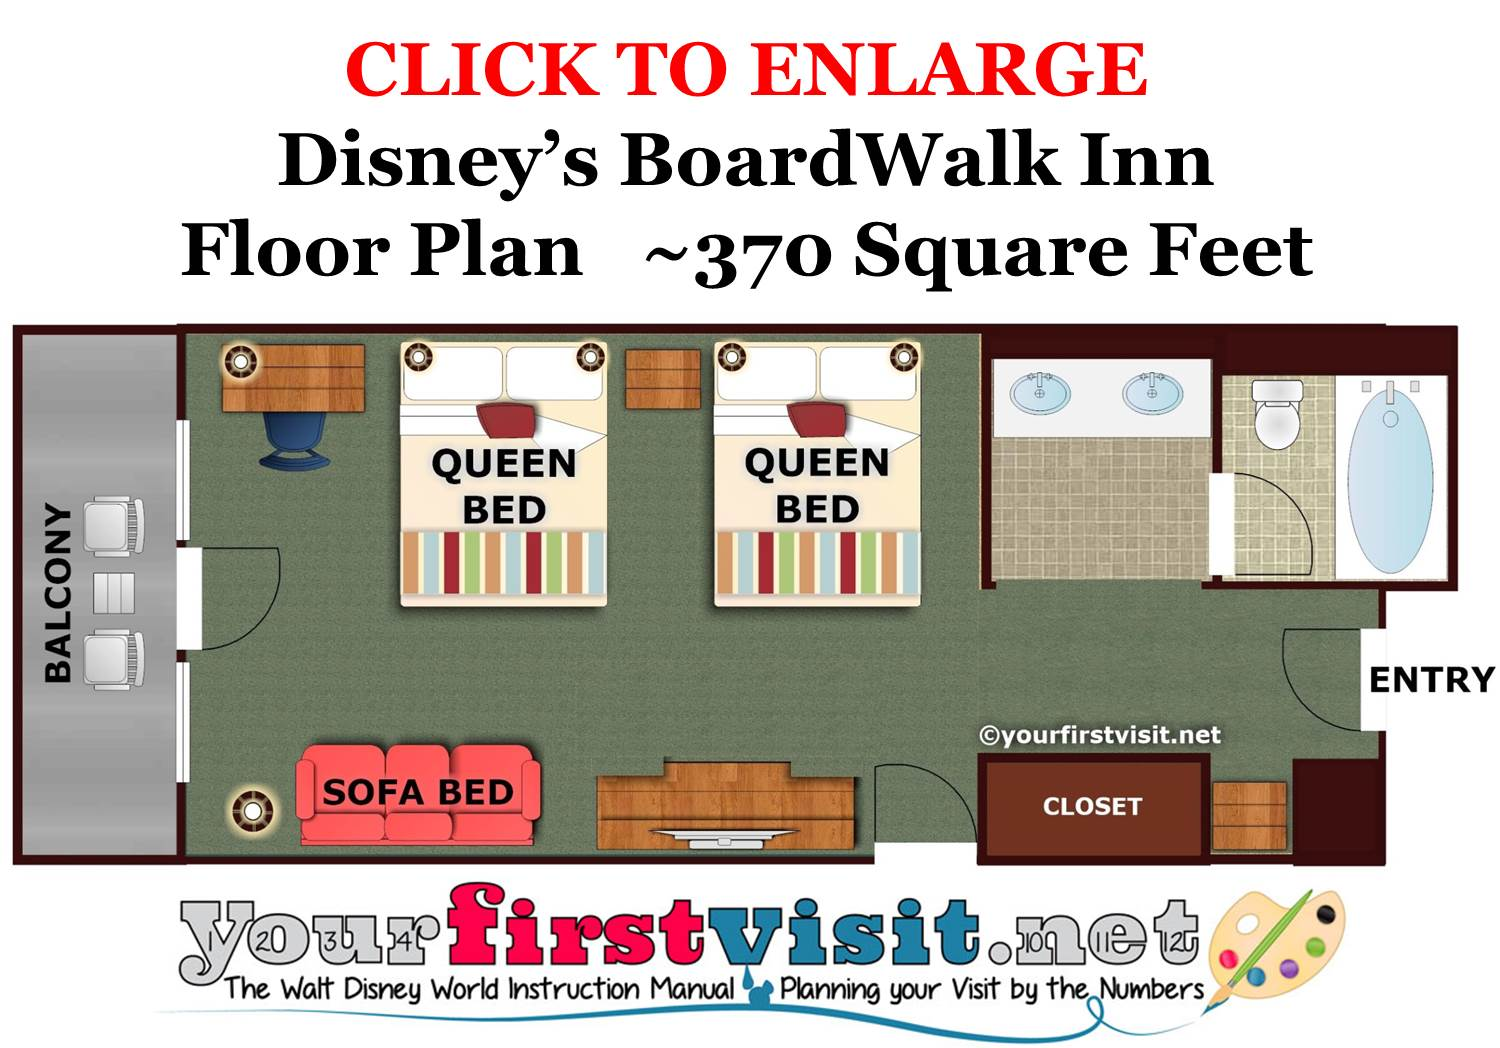 Floor Plan Disney's BoardWalk Inn from yourfirstvsisit.net